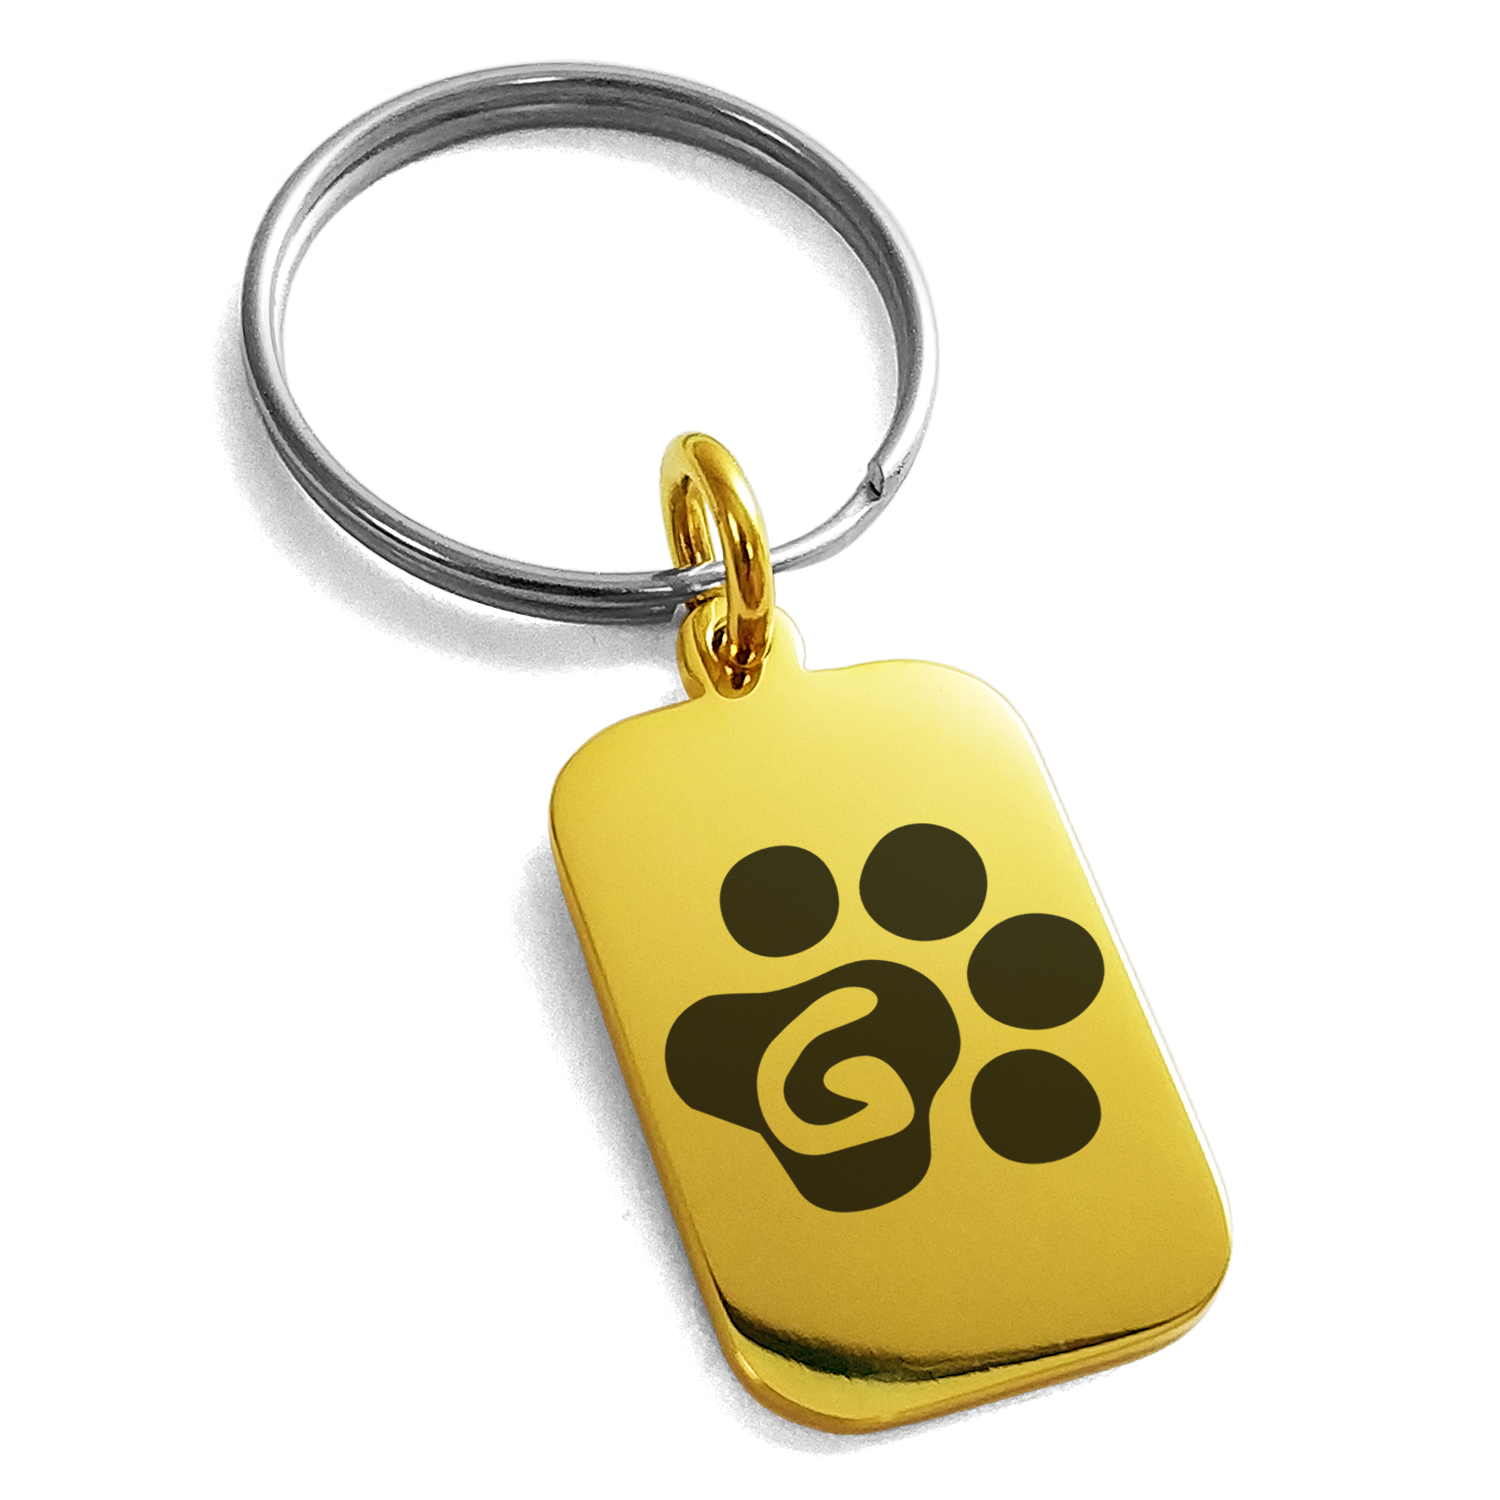 Stainless Steel Letter G Initial Cat Dog Paws Monogram Engraved Small Rectangle Dog Tag Charm Keychain Keyring